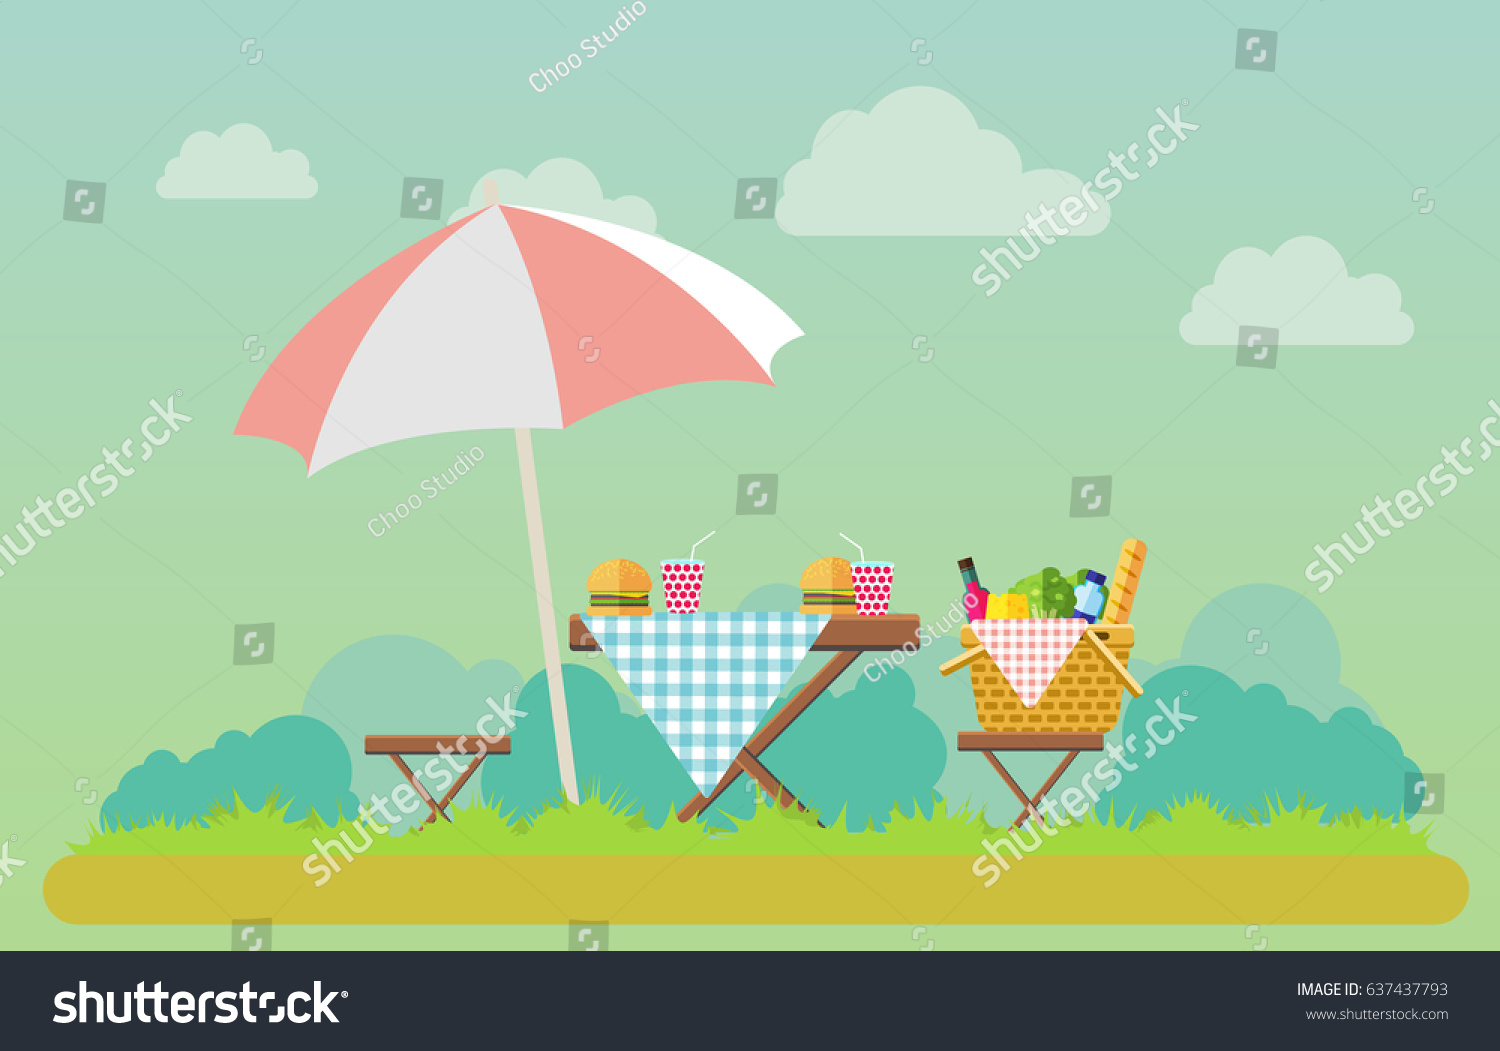 Outdoor Picnic In Park Vector Flat Style Illustration. Table Covered With  Tartan Cloth With Chairs